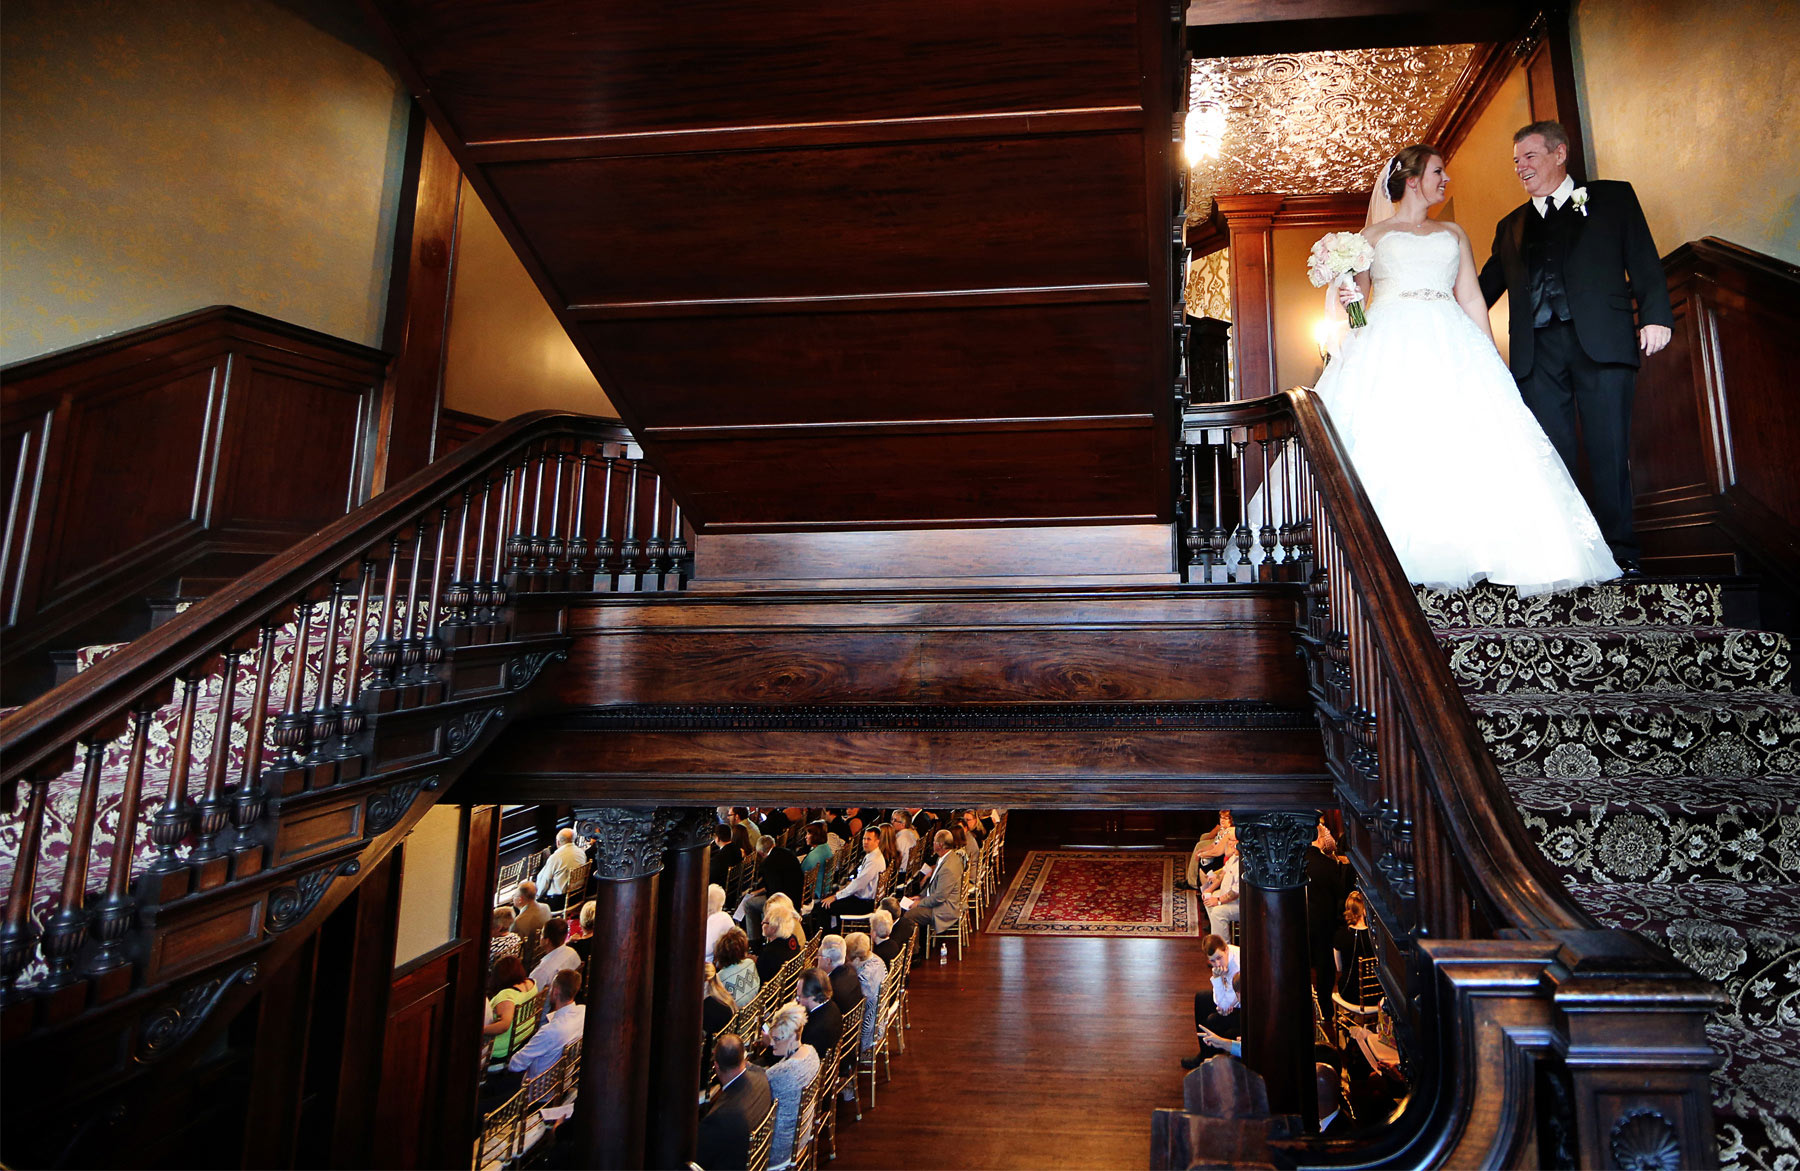 11-Minneapolis-Minnesota-Wedding-Photography-by-Vick-Photography-Semple-Mansion-Ceremony-Grand-Staircase-Caitlin-&-Derrick.jpg